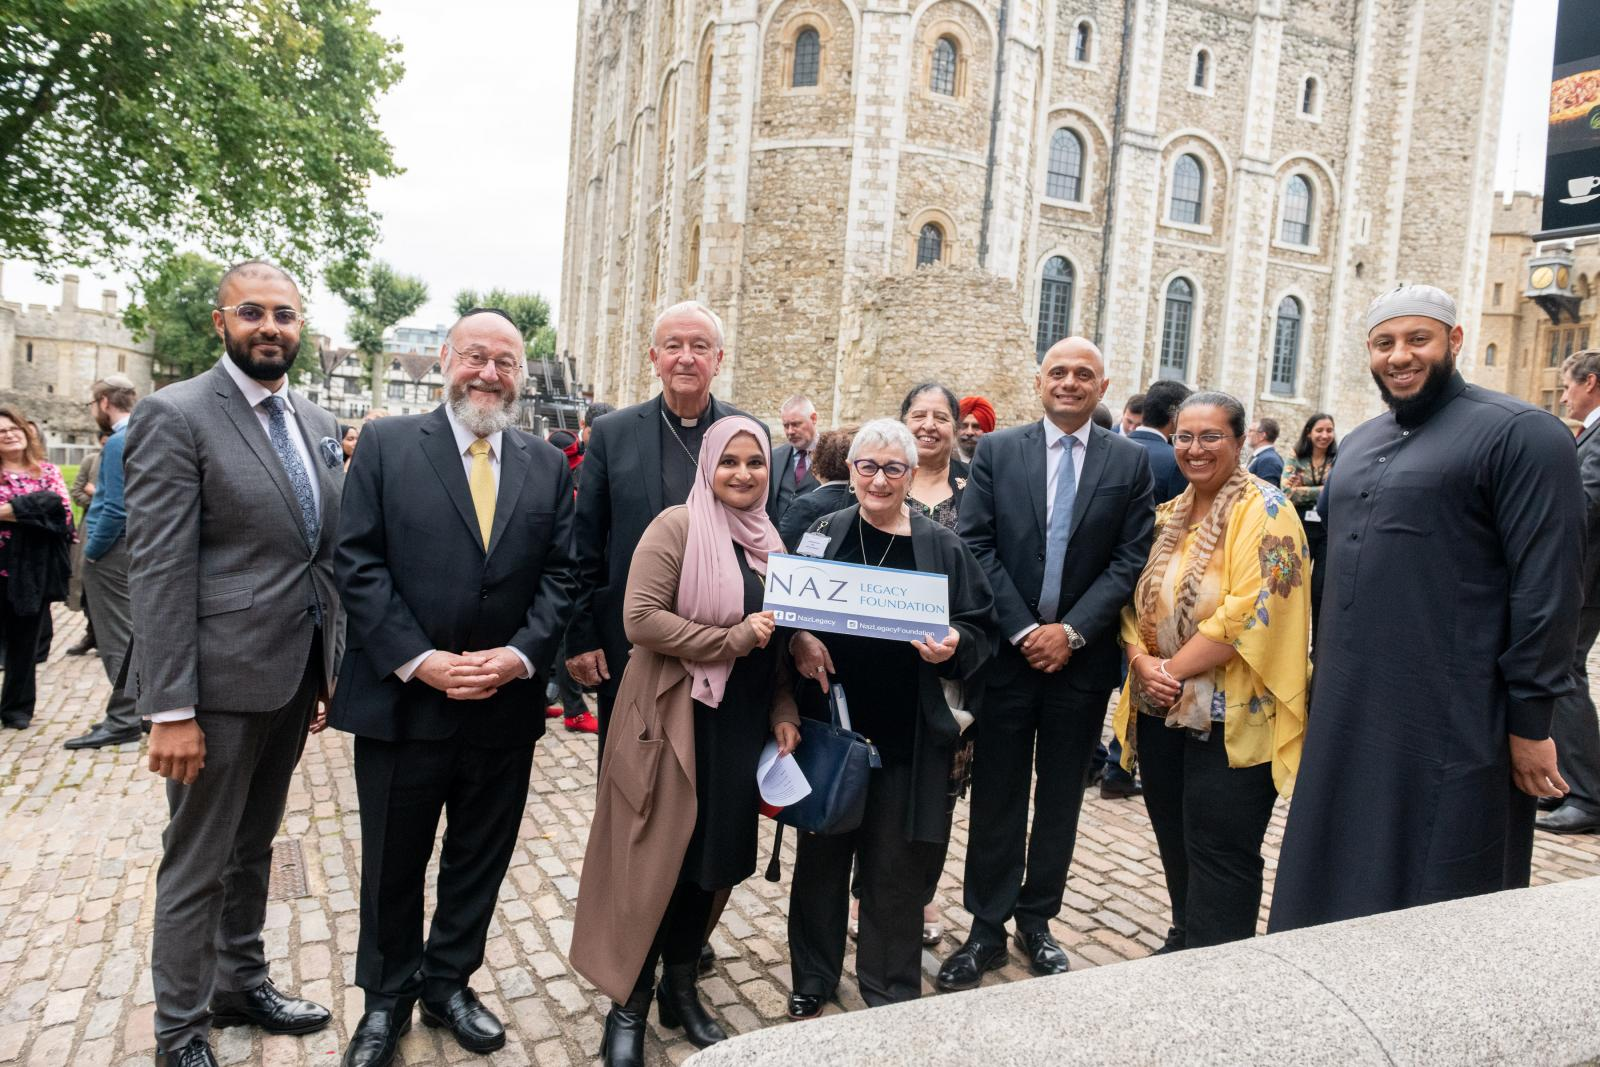 Faith leaders celebrate contribution of faith communities during pandemic - Diocese of Westminster